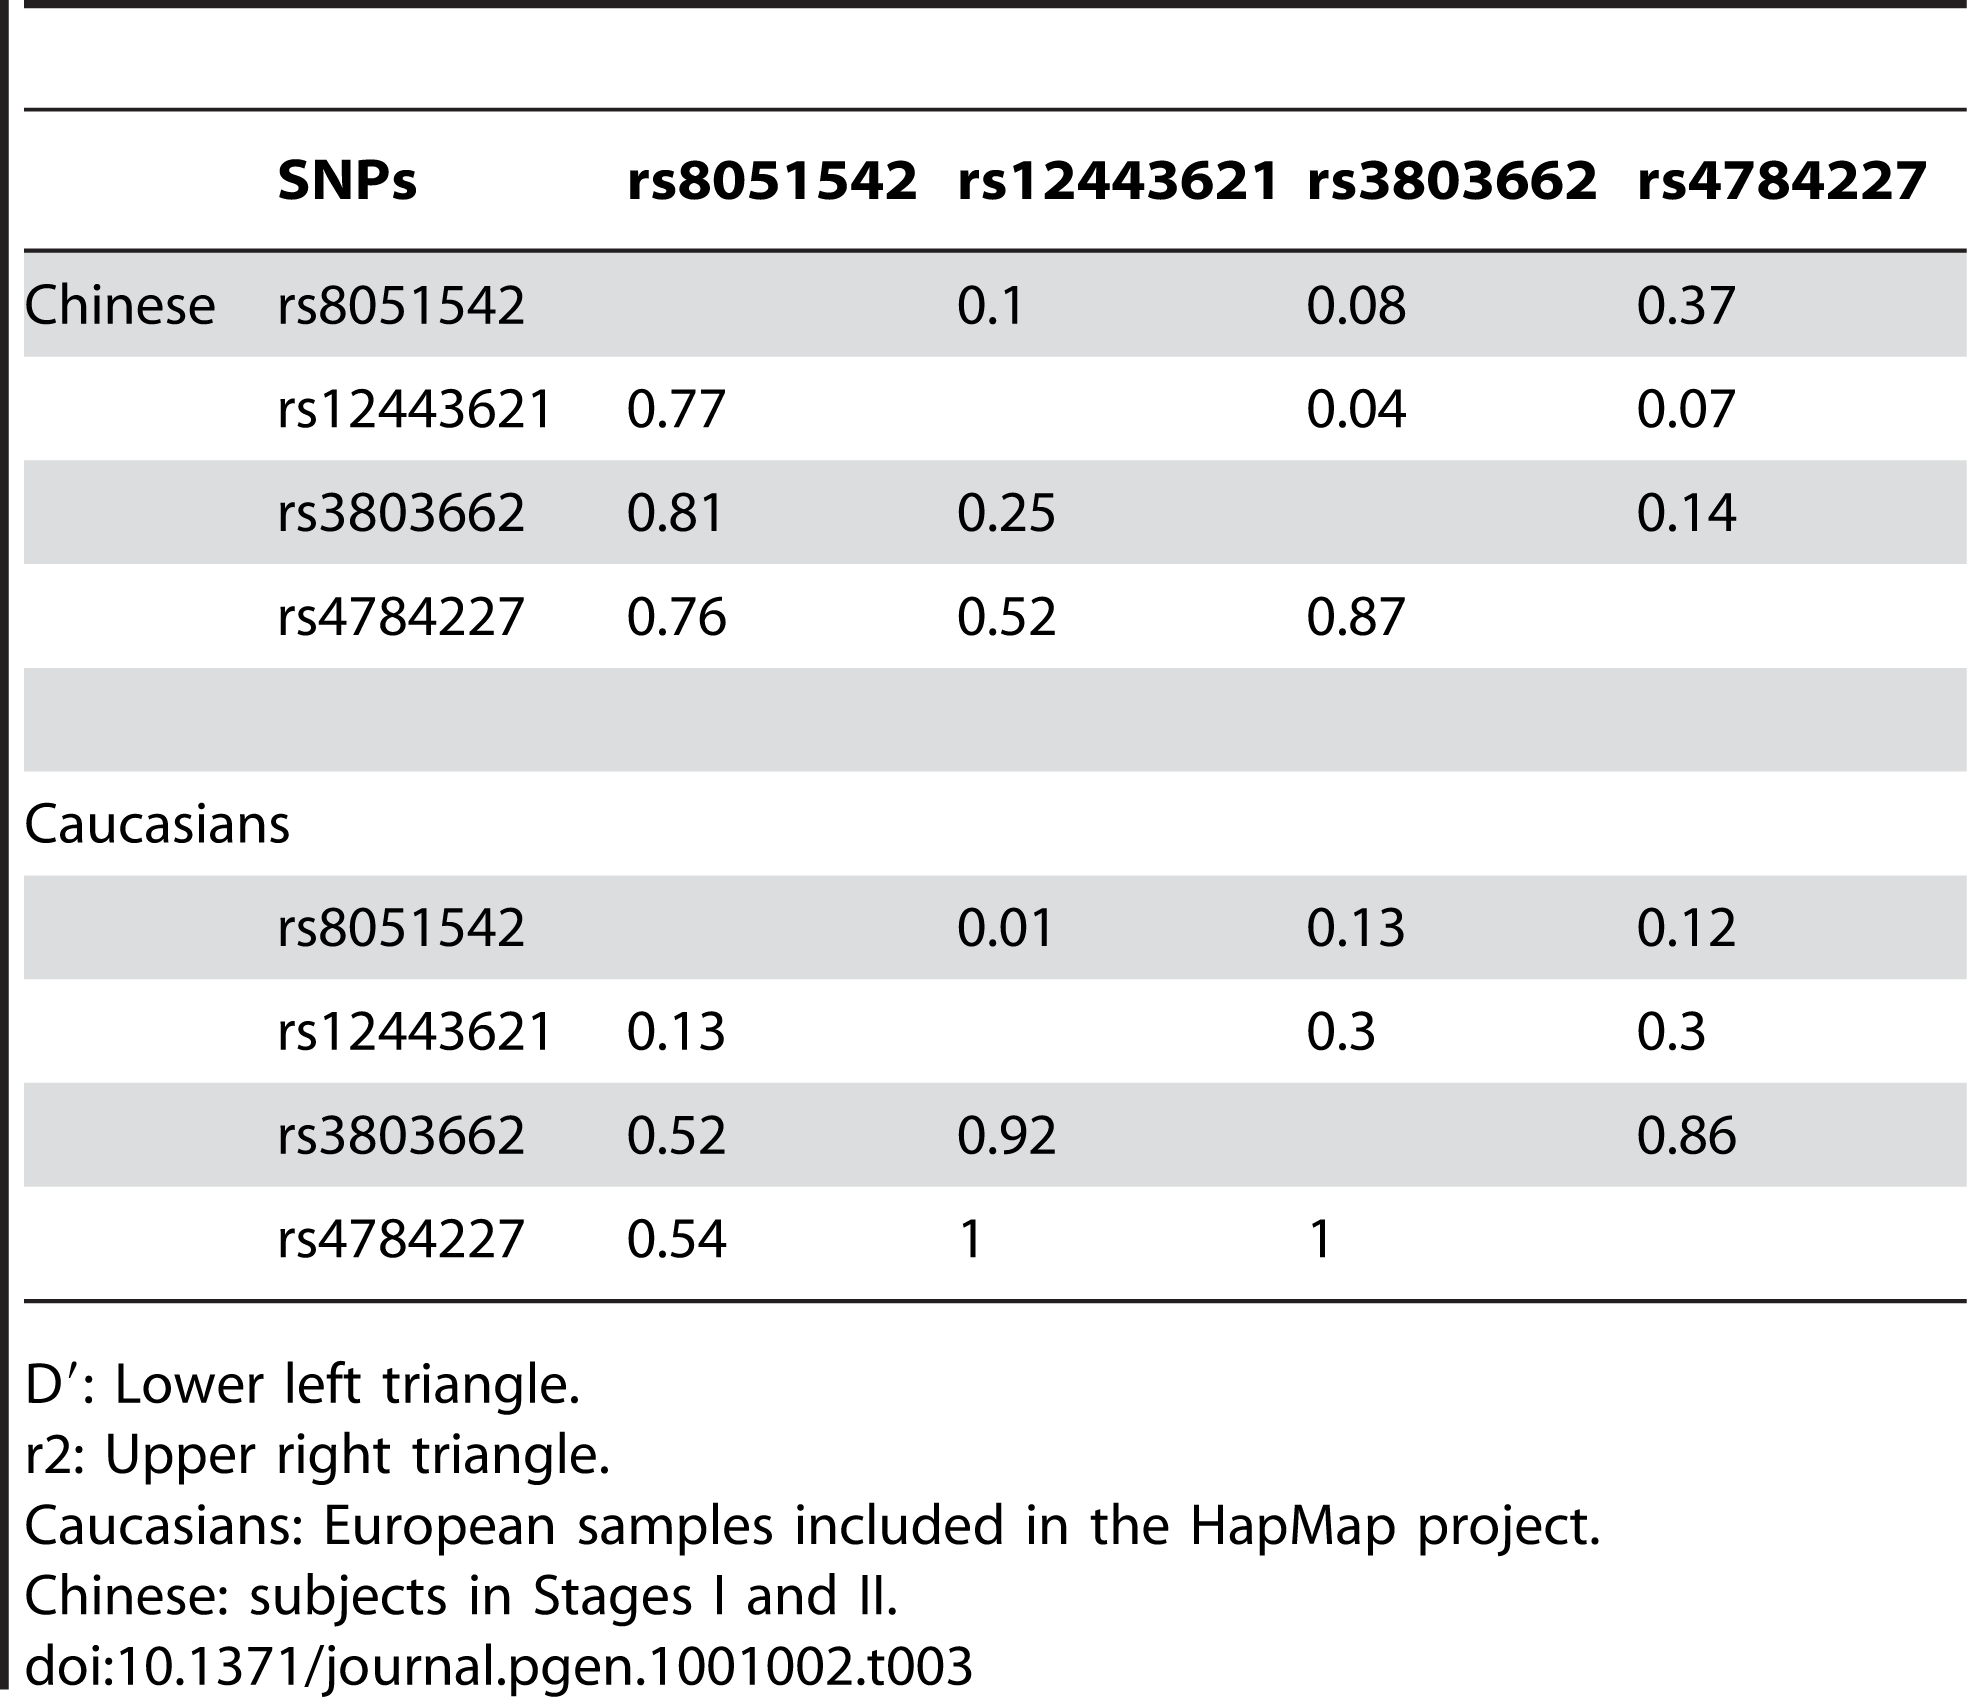 Linkage disequilibrium patterns among rs4784227 and the three previously-reported SNPs in 16q12.1.